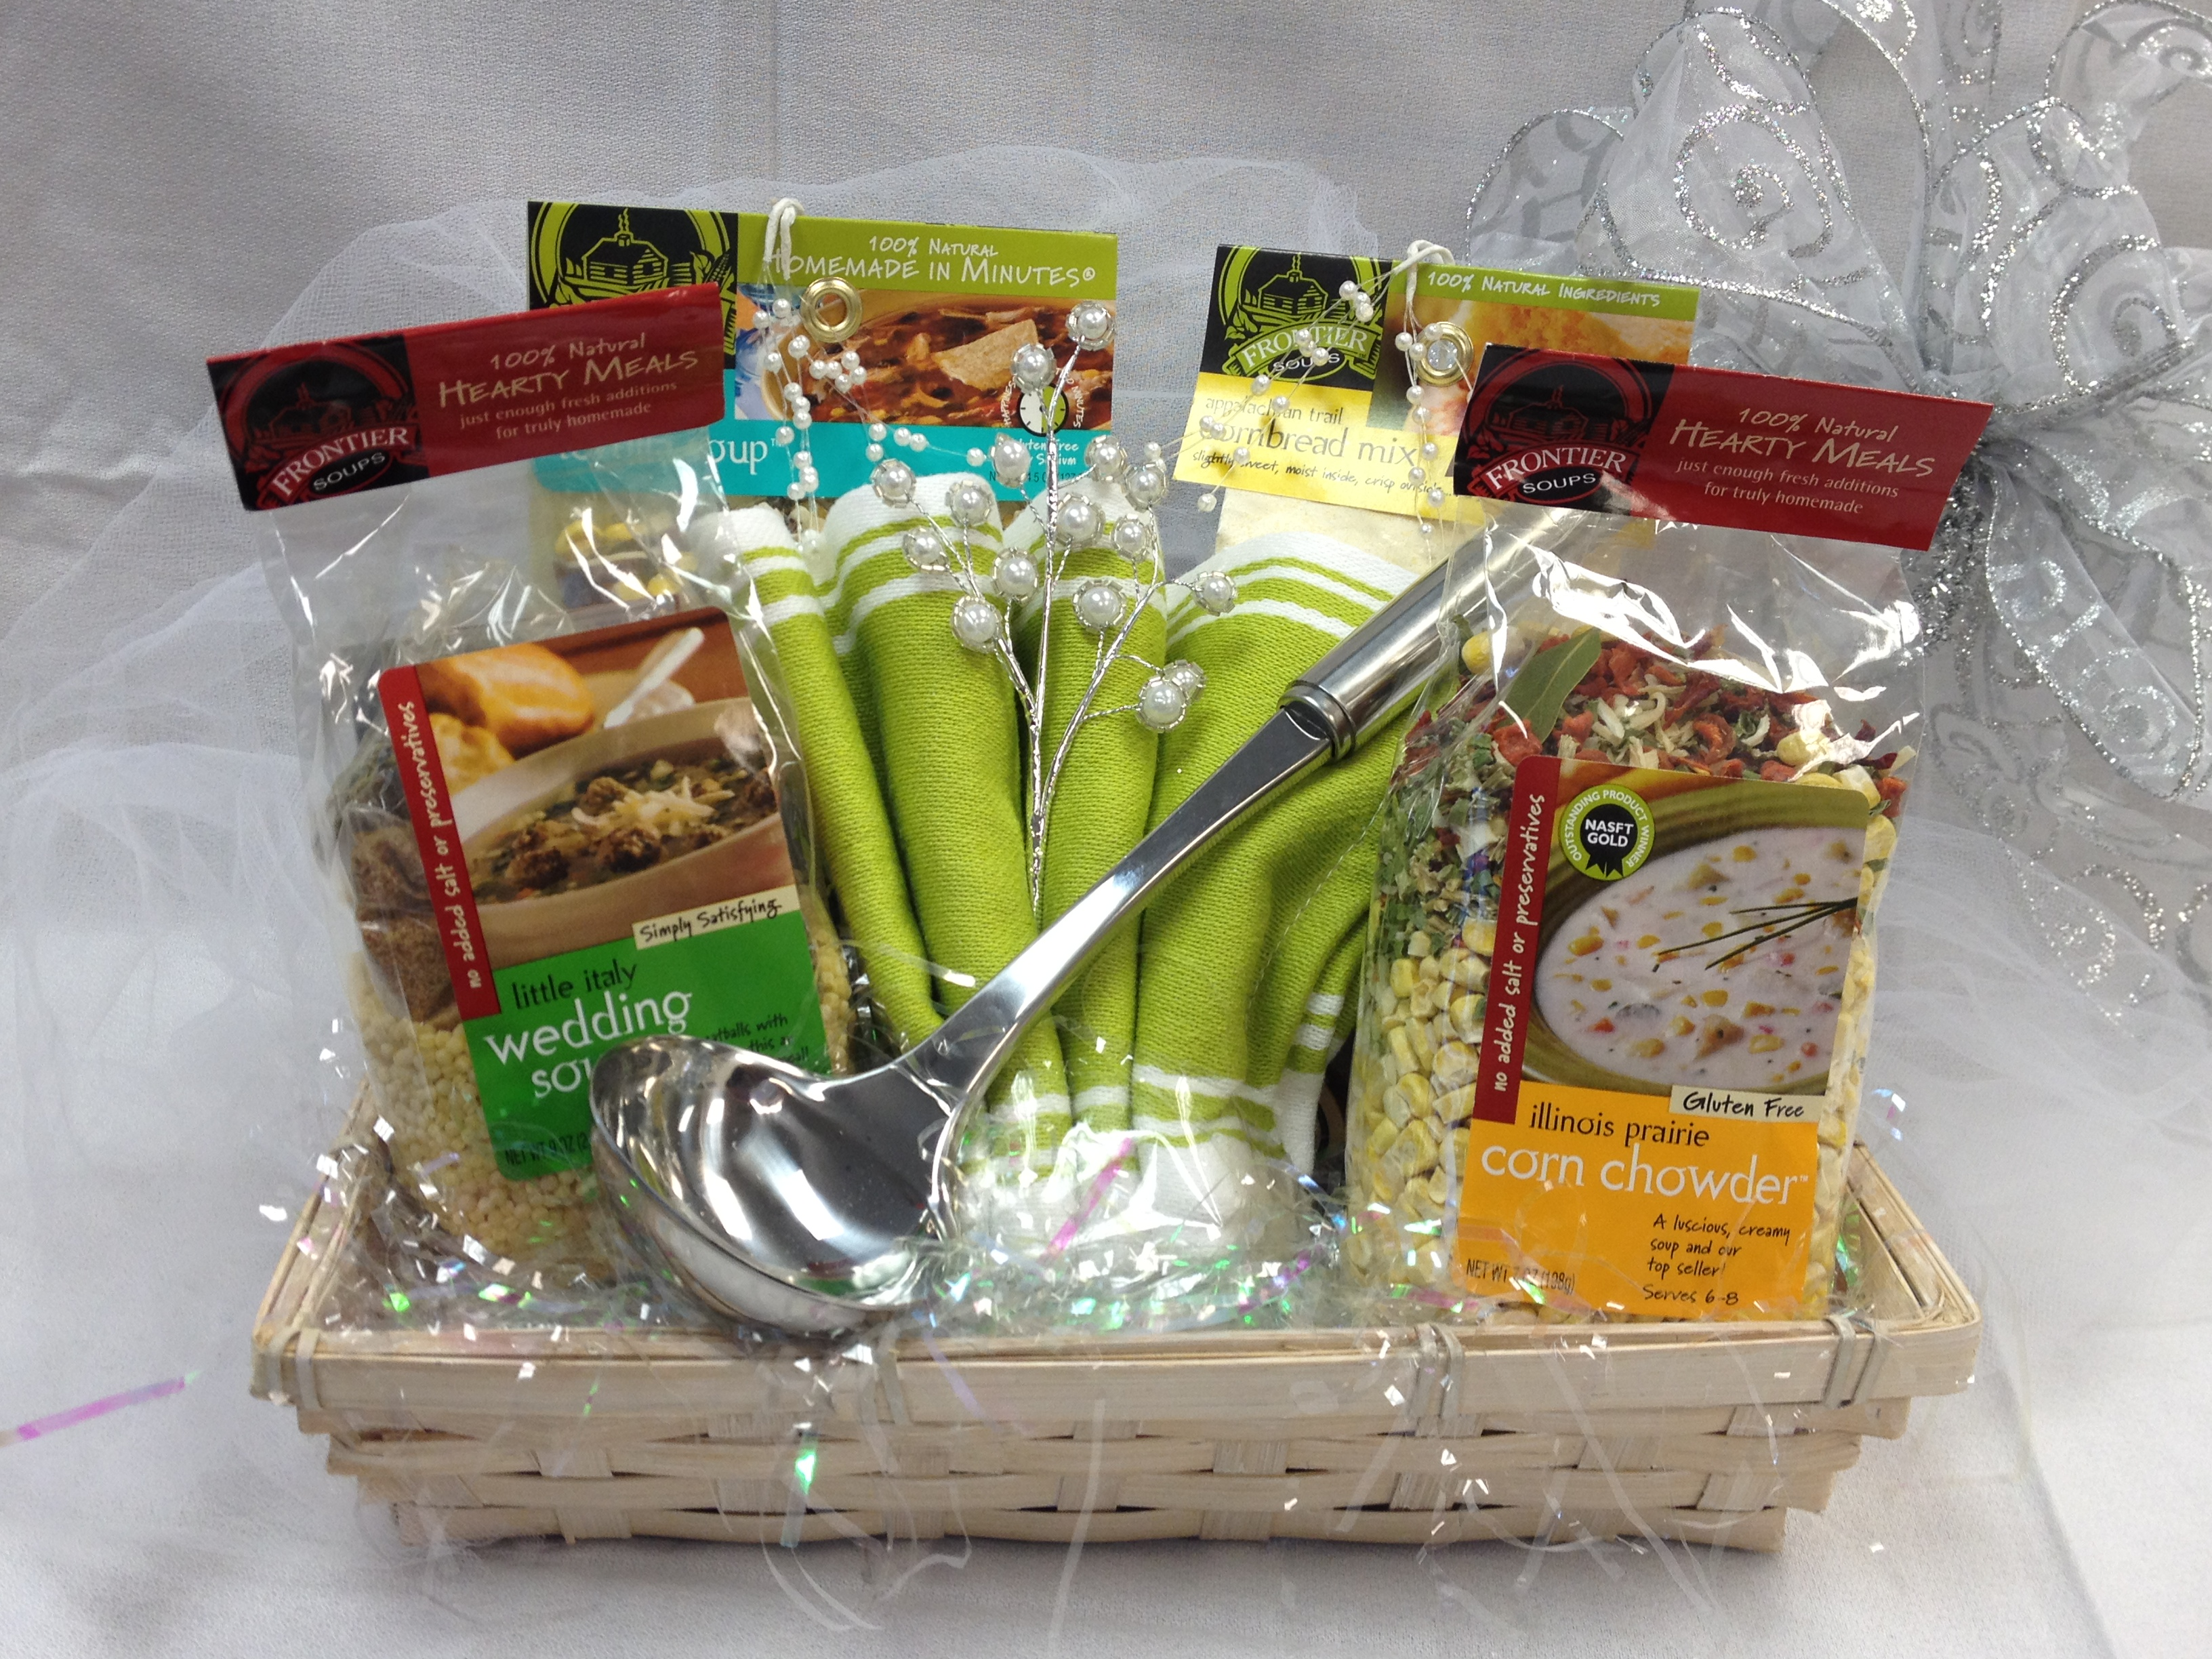 How To Make Wedding Gift Basket : ... Soups Introduces New Summer Soup Four Pack and Wedding Gift Basket